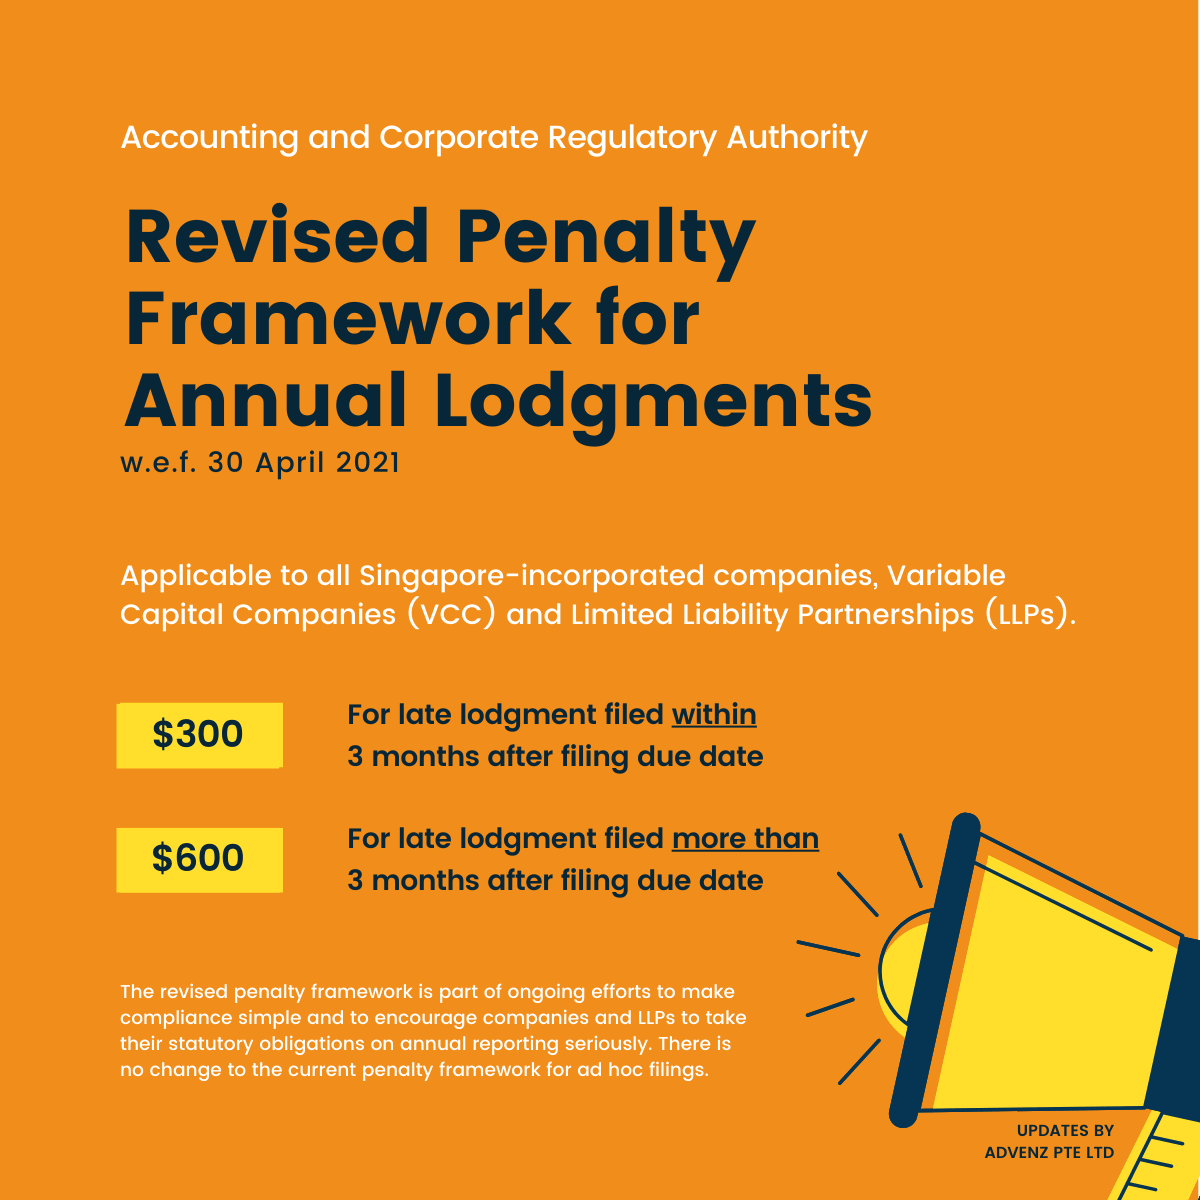 Revised Penalty Framework for Annual Lodgments (ACRA)